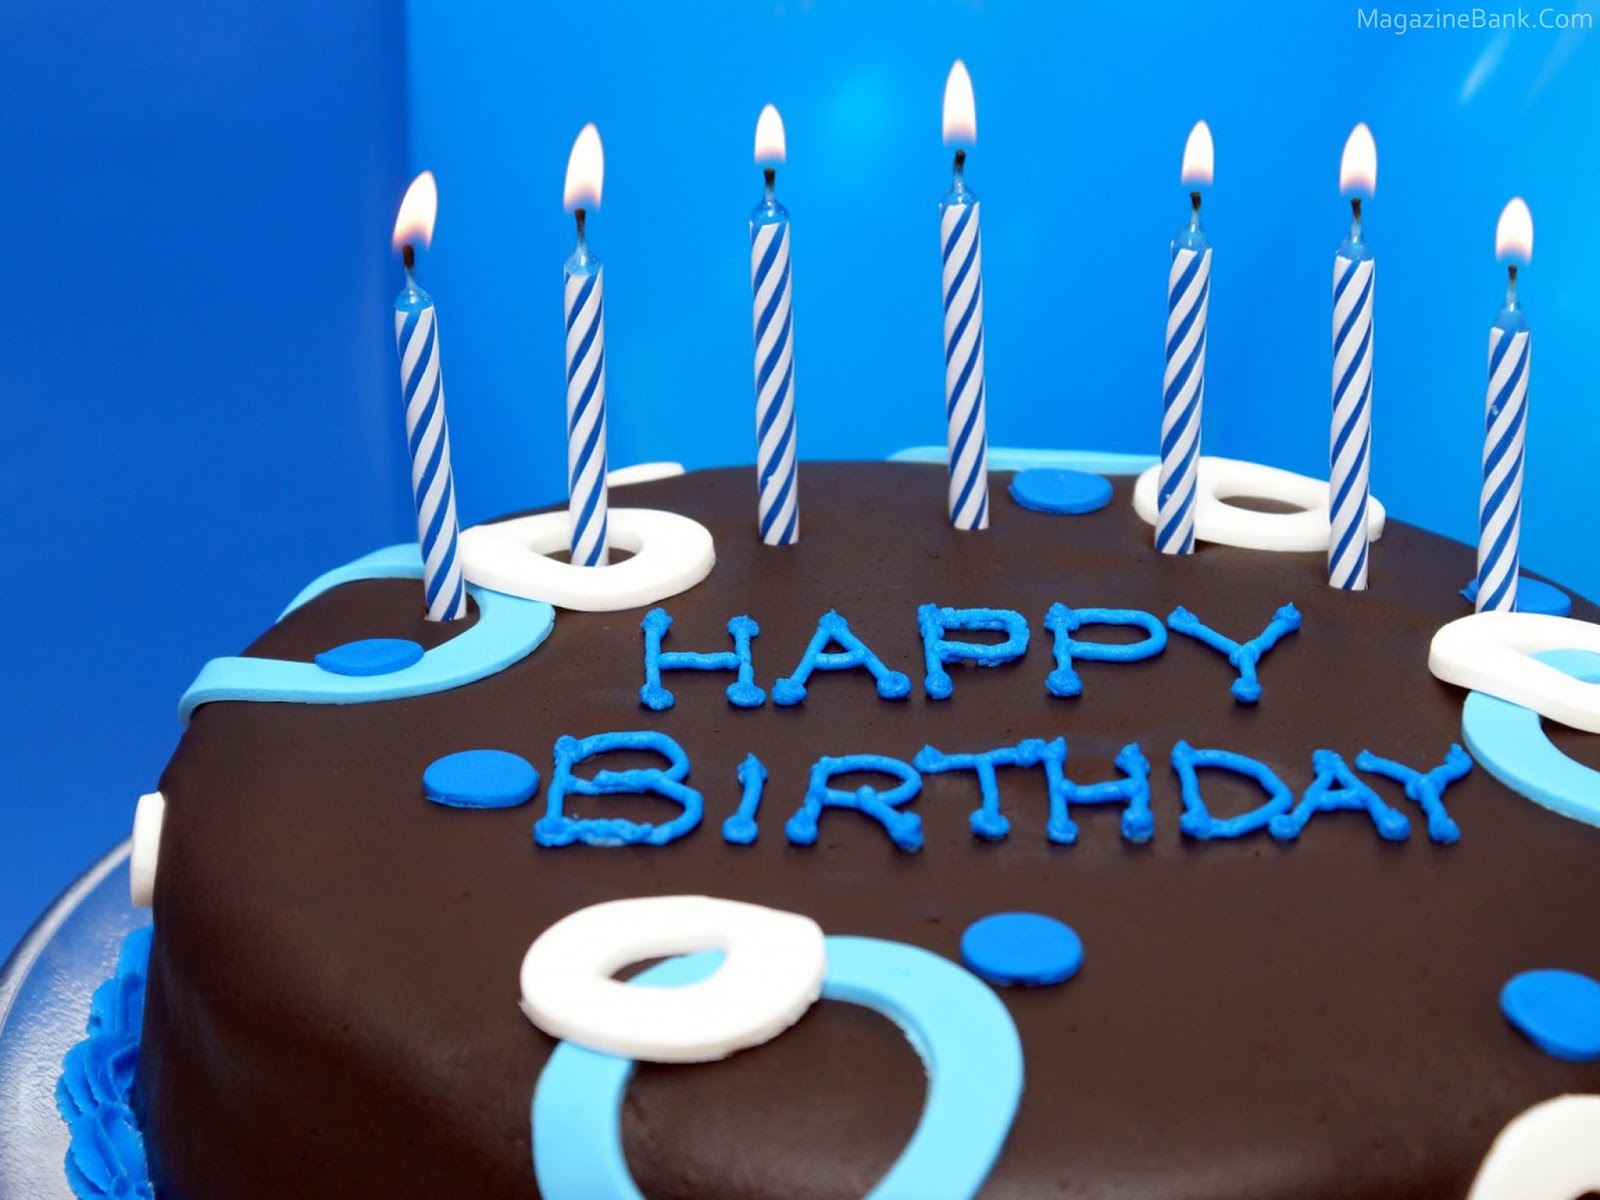 Top Happy Birthday Ecards Download Free – Free Birthday Sms Cards